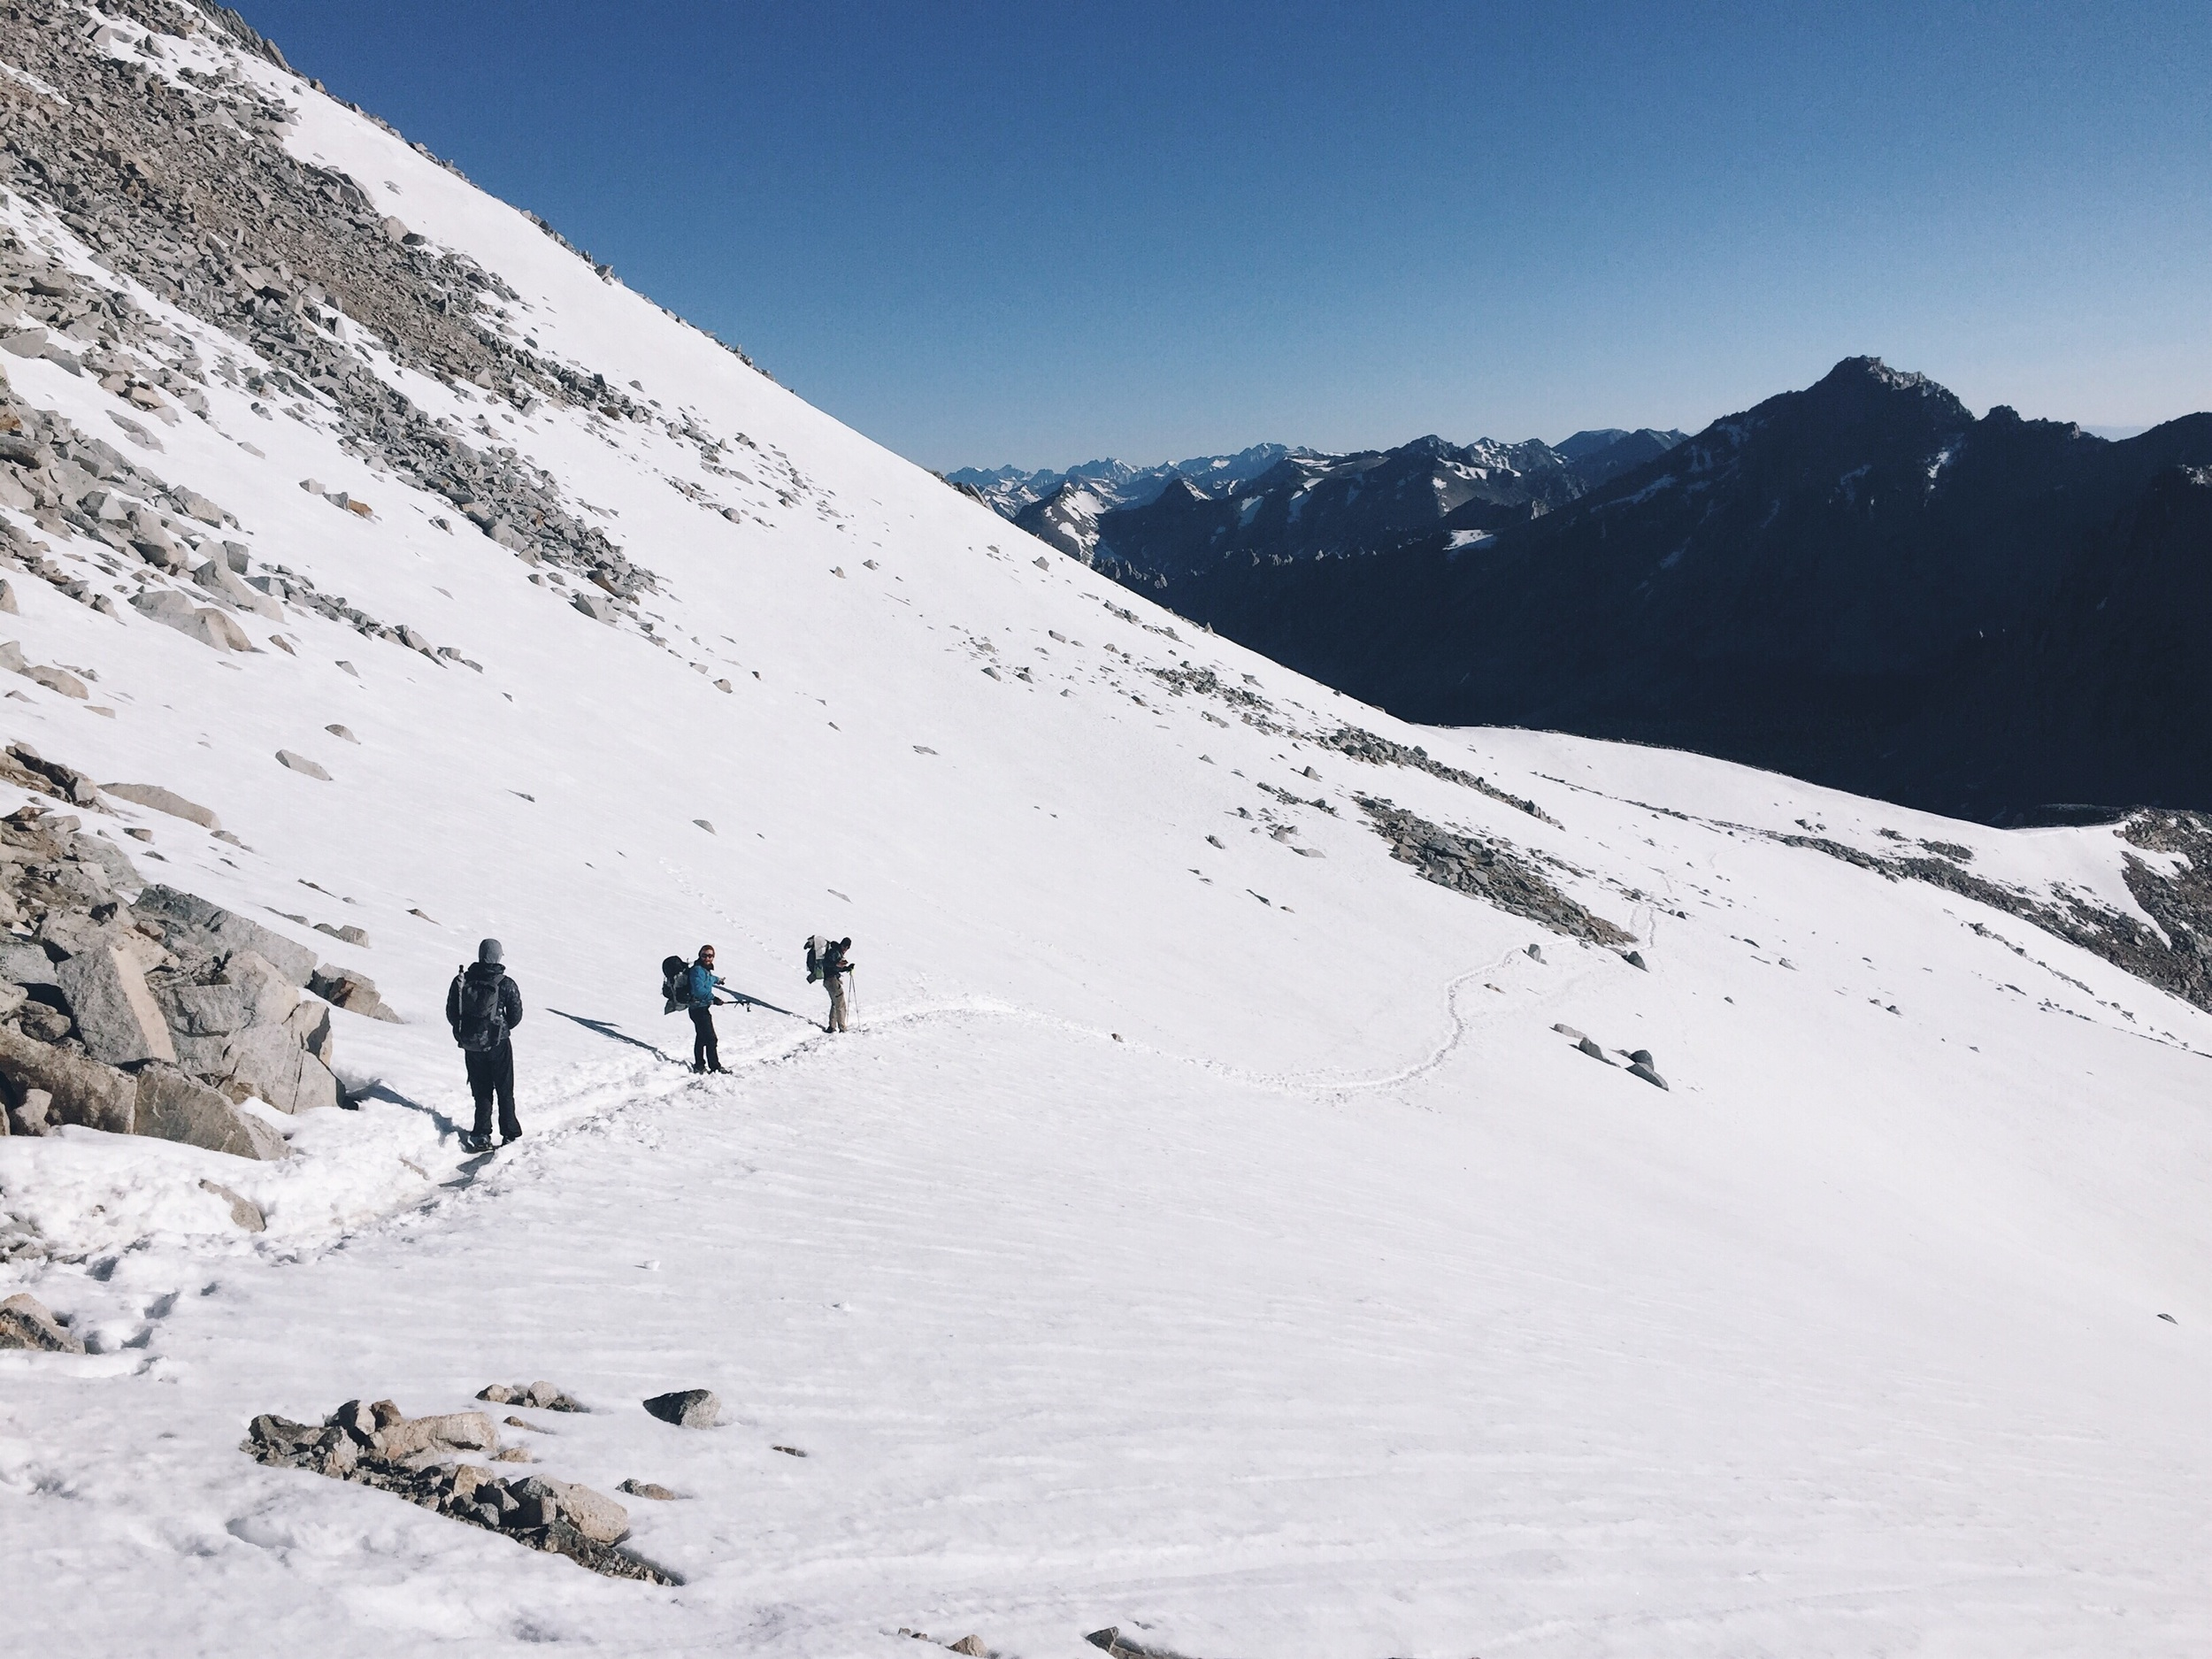 Descending from forester. All snow.